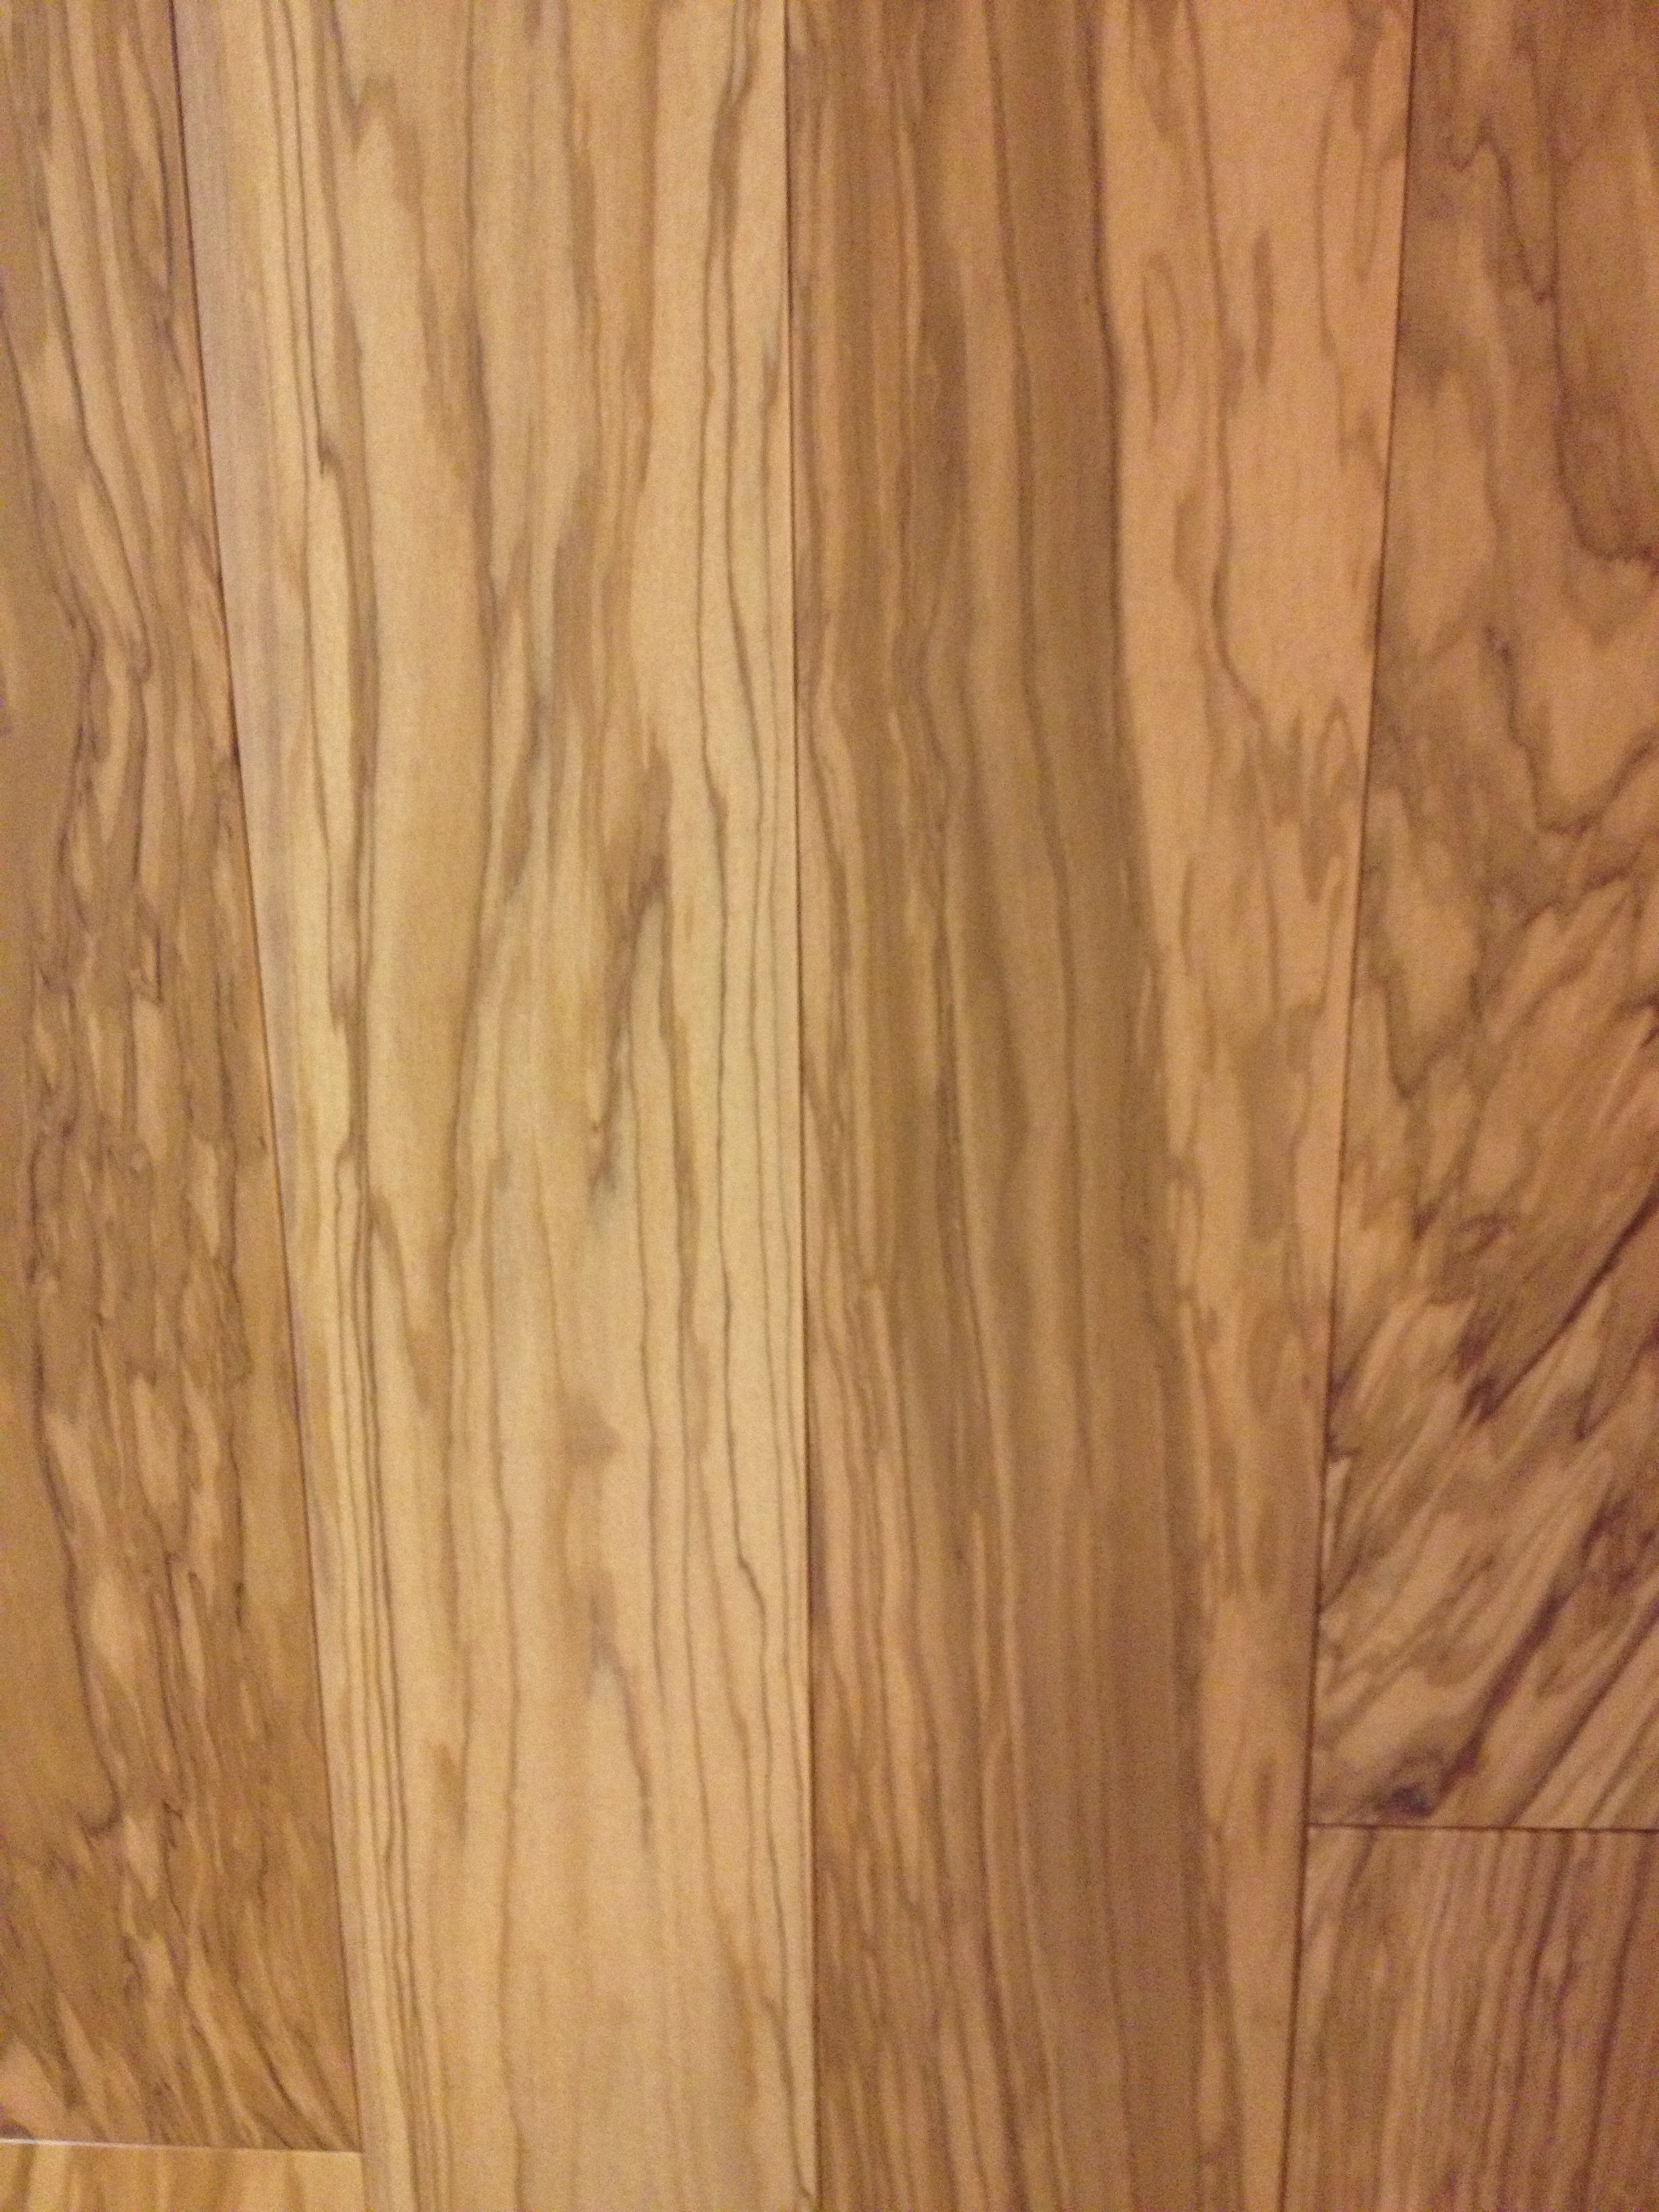 carbonized bamboo hardwood flooring of tuscany olive wood floor there is nothing quite like olive wood for throughout tuscany olive wood floor there is nothing quite like olive wood for turning your home